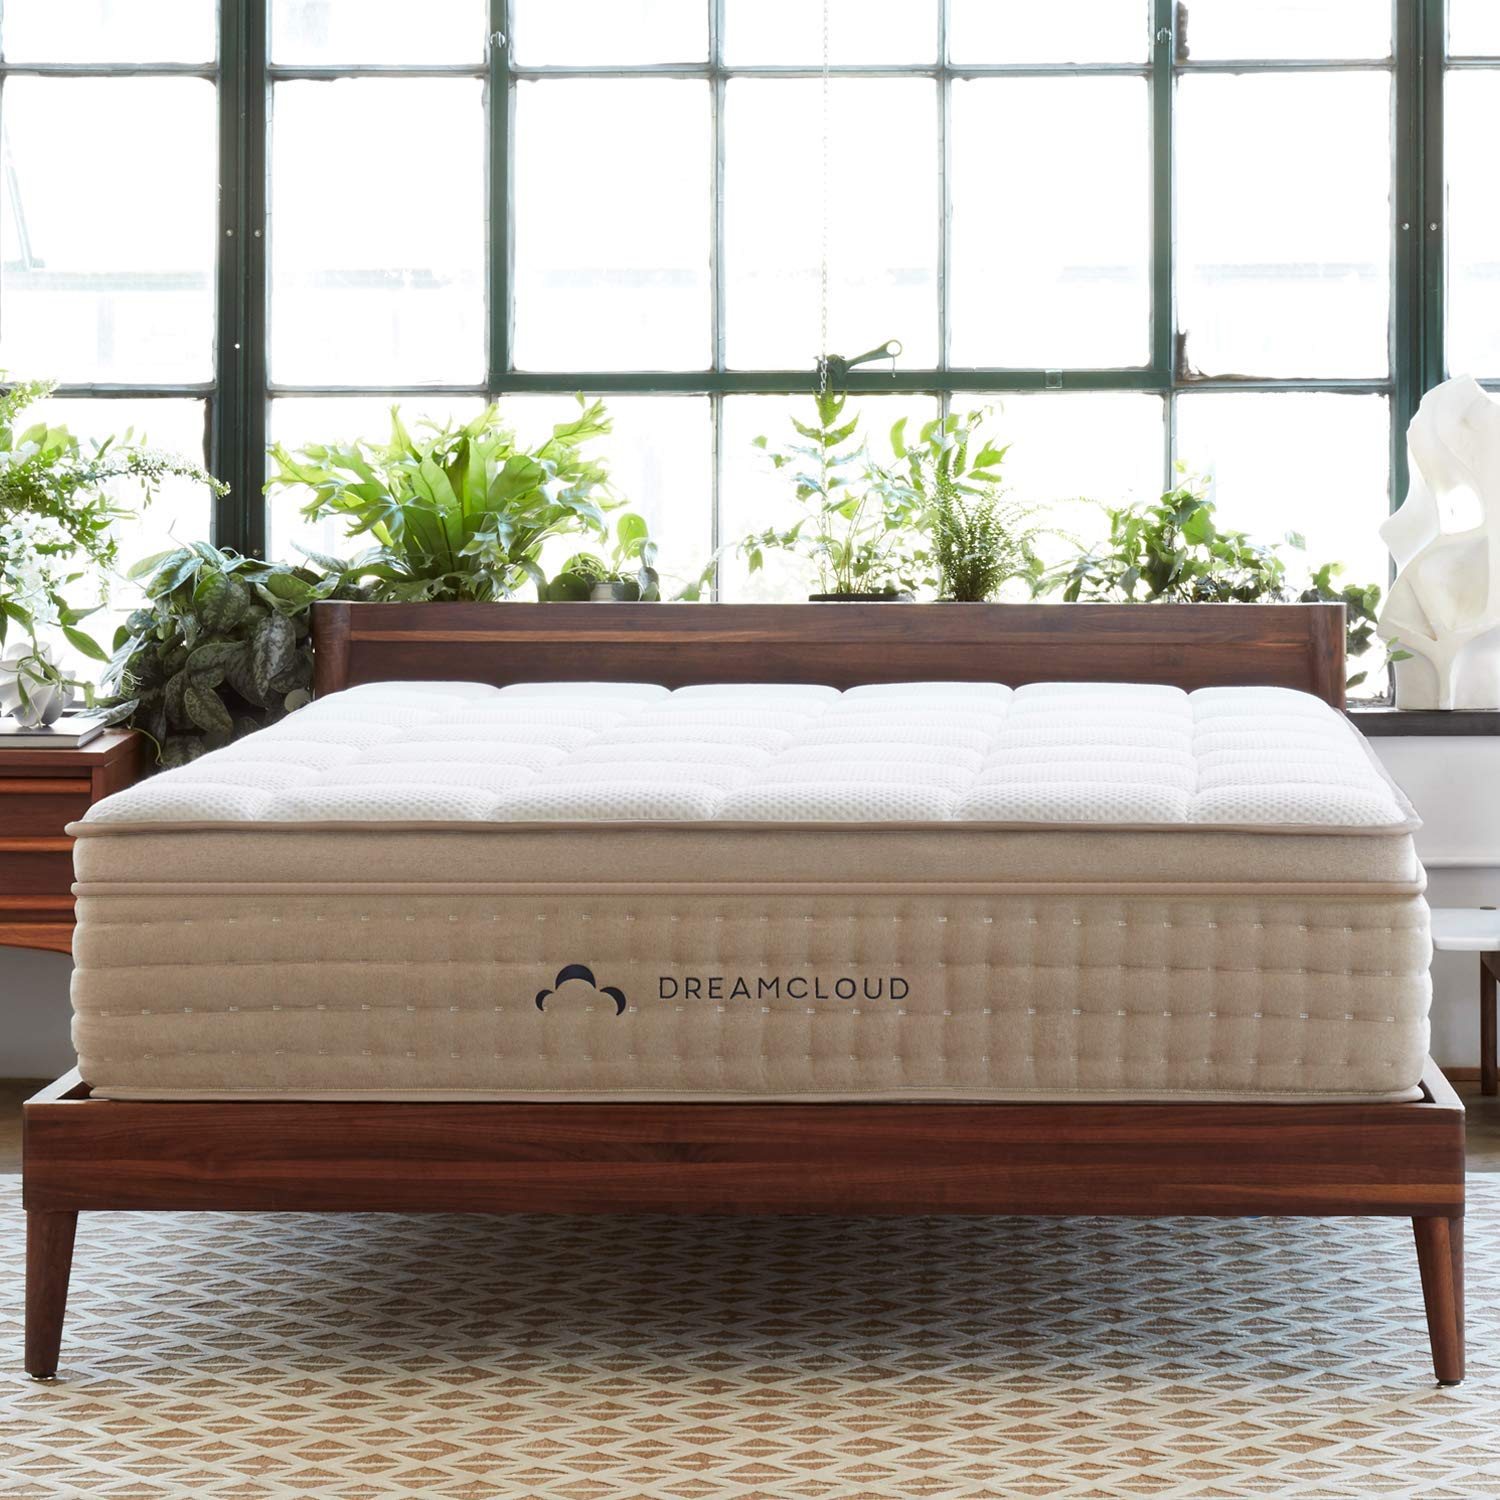 Dream Cloud King Mattress - Luxury Hybrid Mattress with 6 Premium Layers - CertiPUR-US Certified - 180 Night Home Trial - Everlong Warranty by Dream Cloud